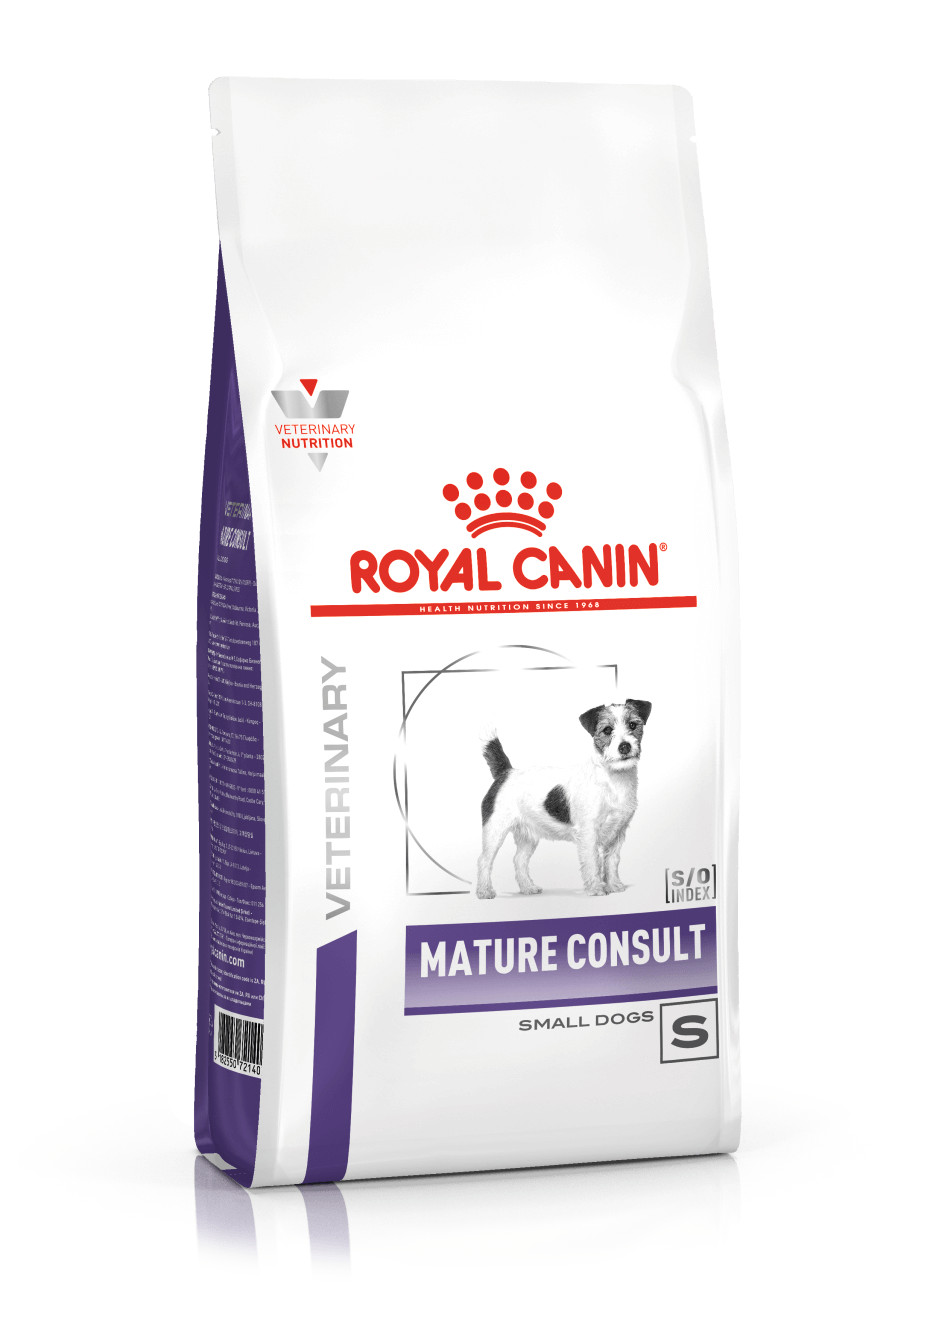 Royal Canin Veterinary Mature Consult Small Dogs hondenvoer